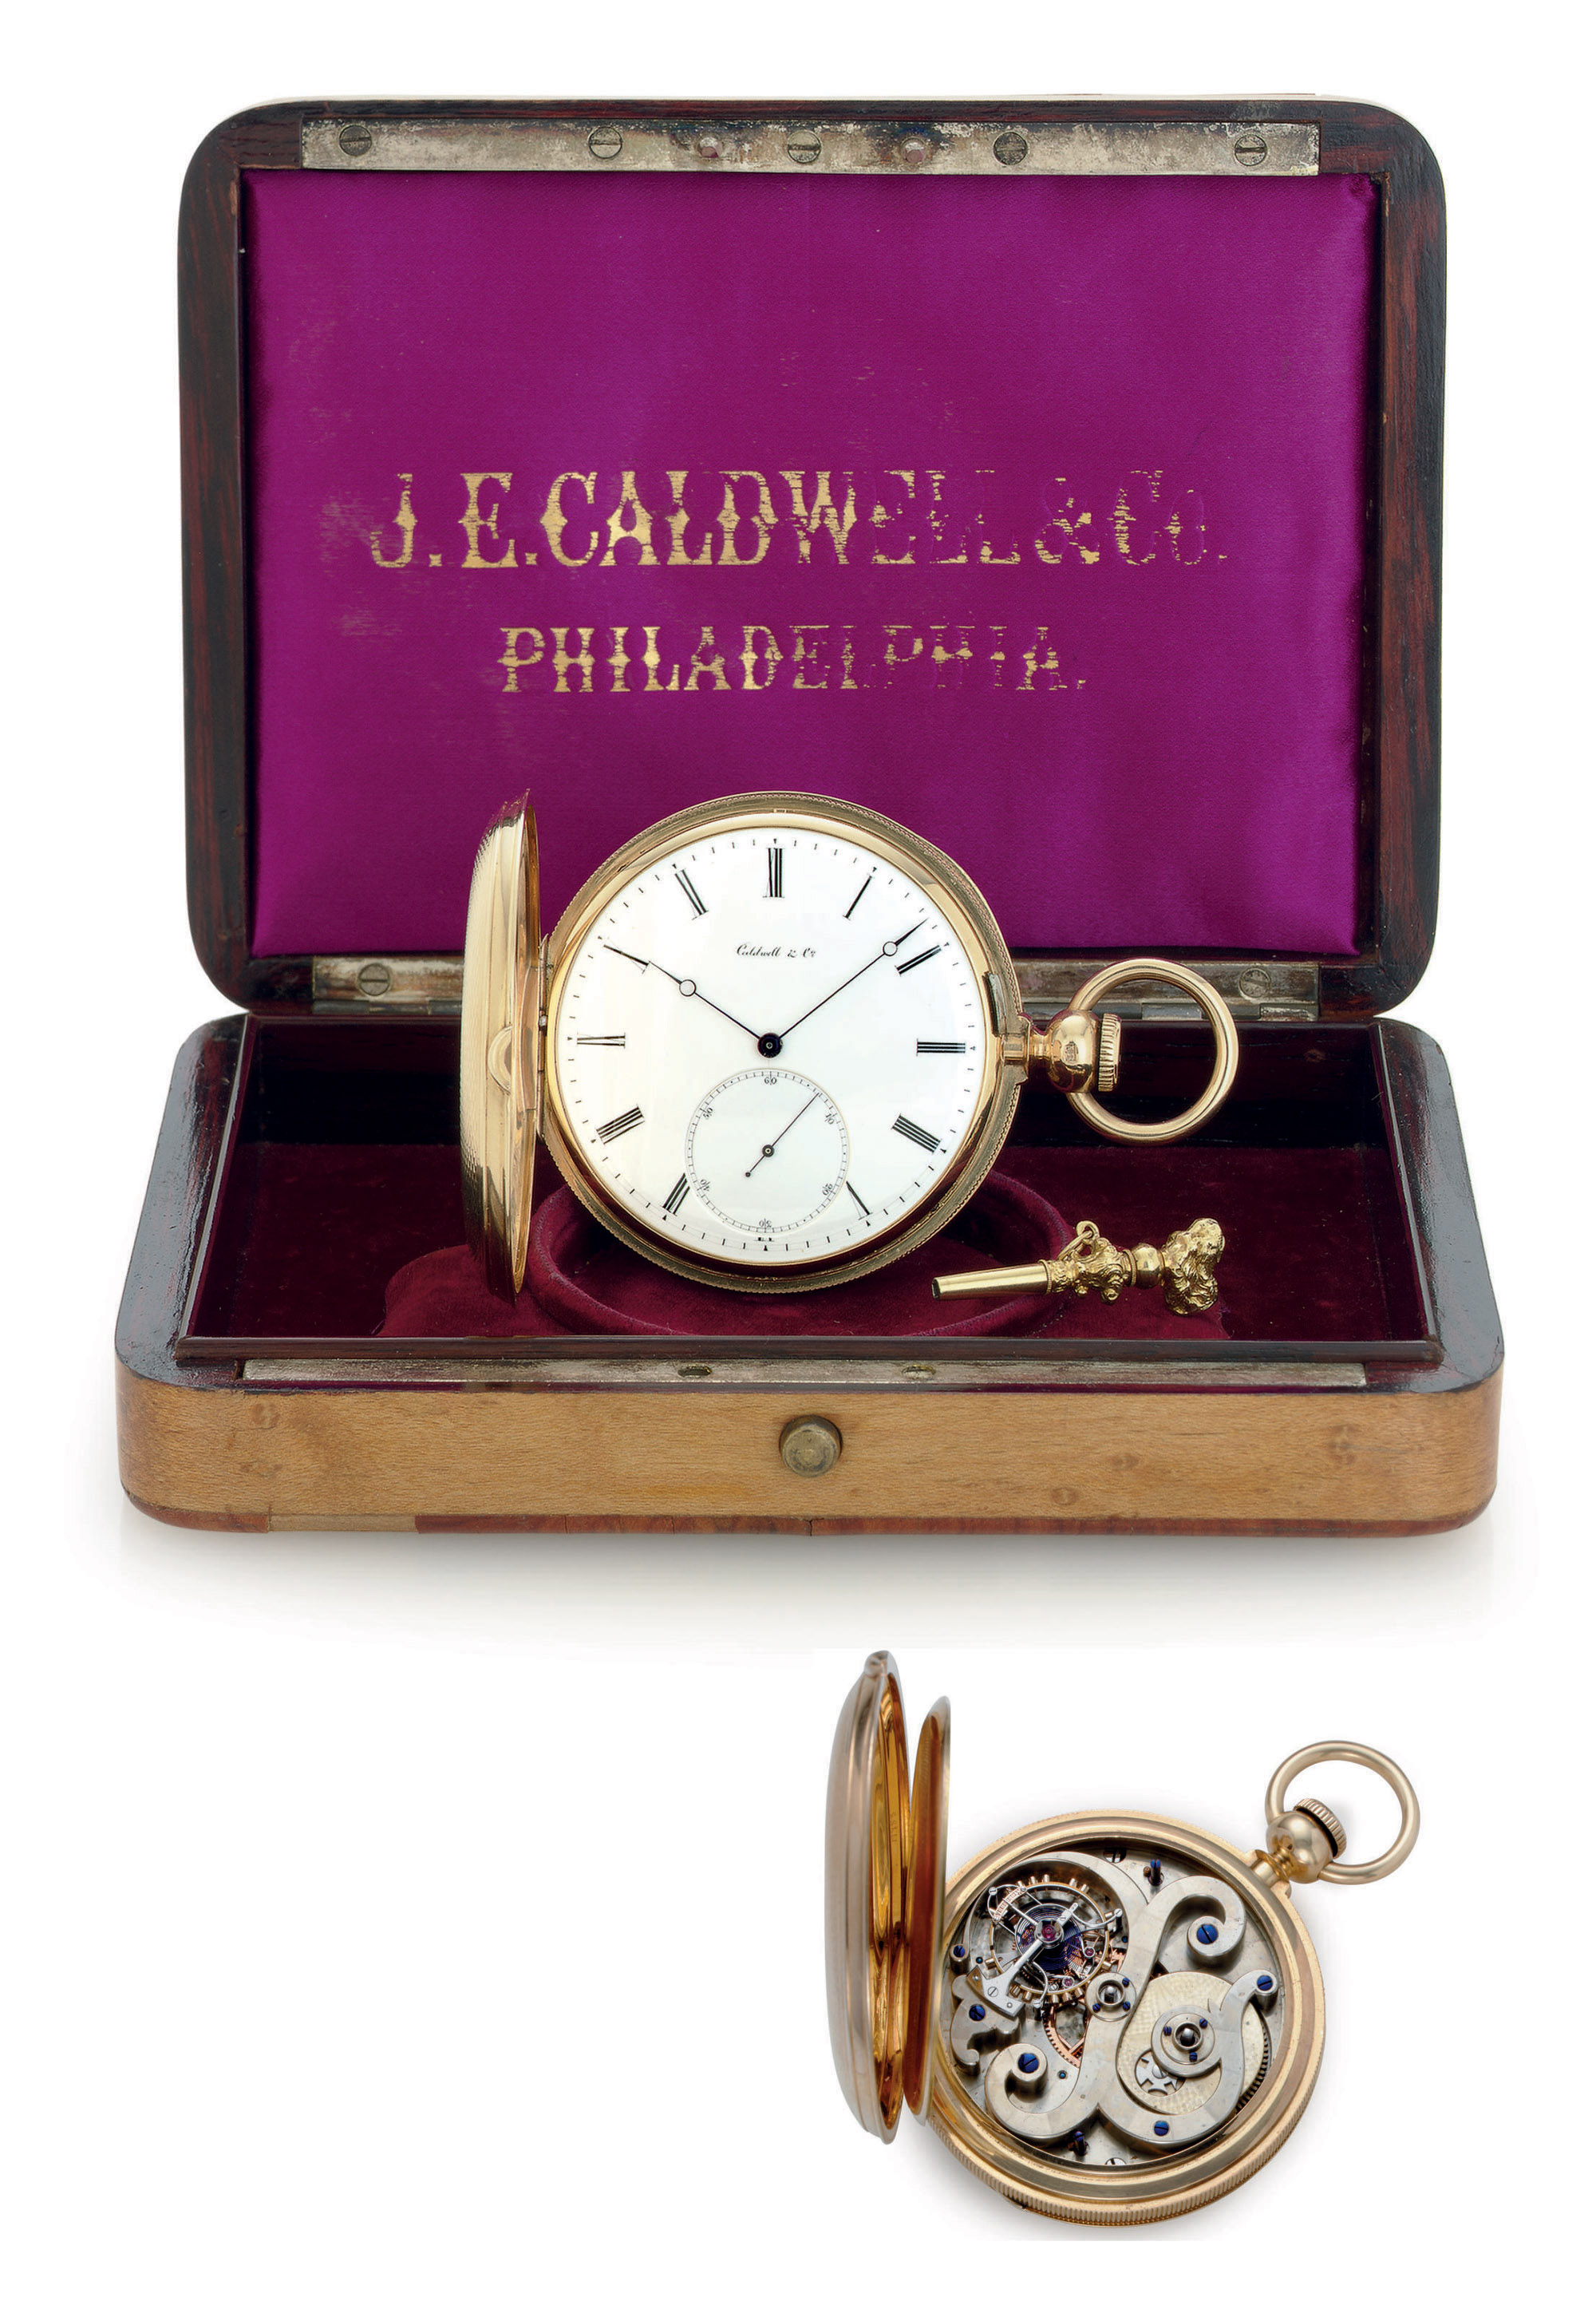 CALDWELL.  AN 18K GOLD HUNTER CASE KEY WOUND PIVOTED DETENT TOURBILLON POCKET WATCH WITH ORIGINAL PRESENTATION BOX